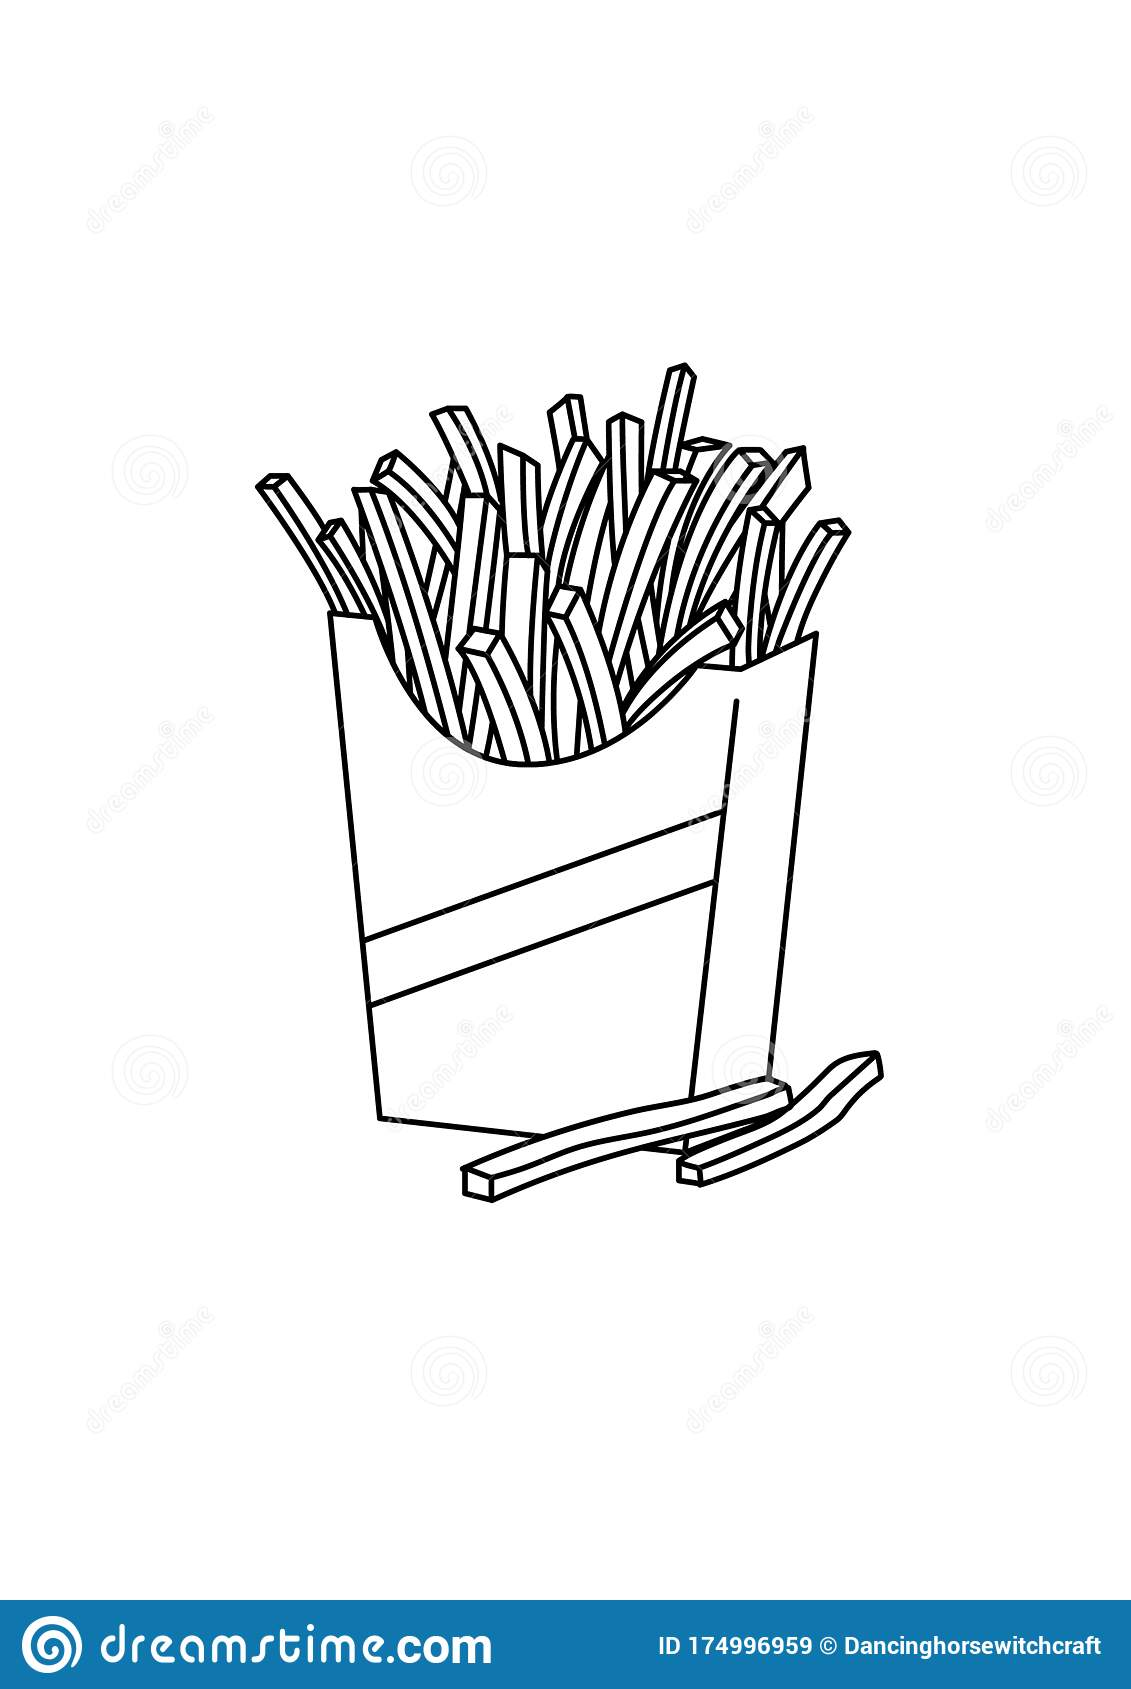 - French Fries Food Black And White Lineart Drawing Illustration